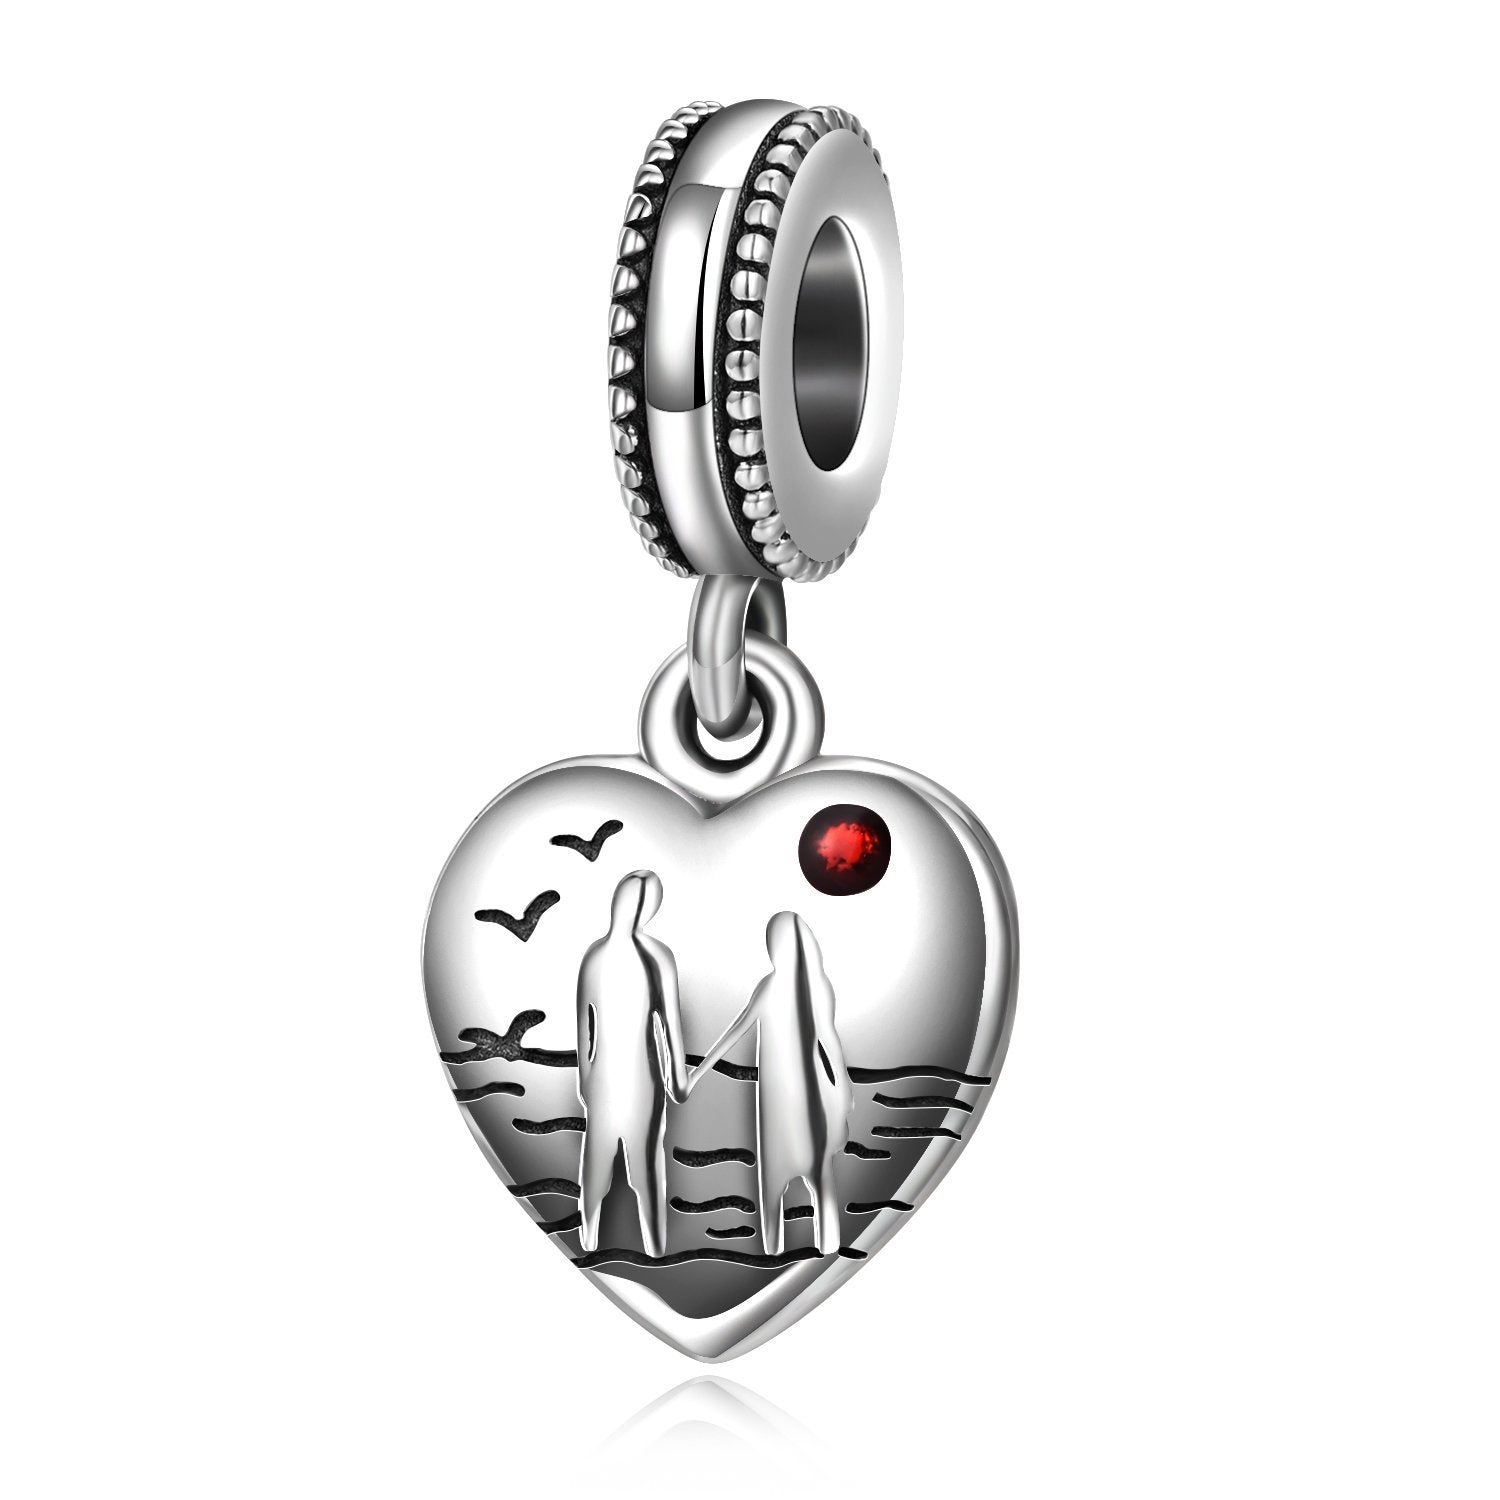 925 Sterling Silver Couples Lover Heart Sterling Silver Charm for Bracelet and Necklace - onlyone